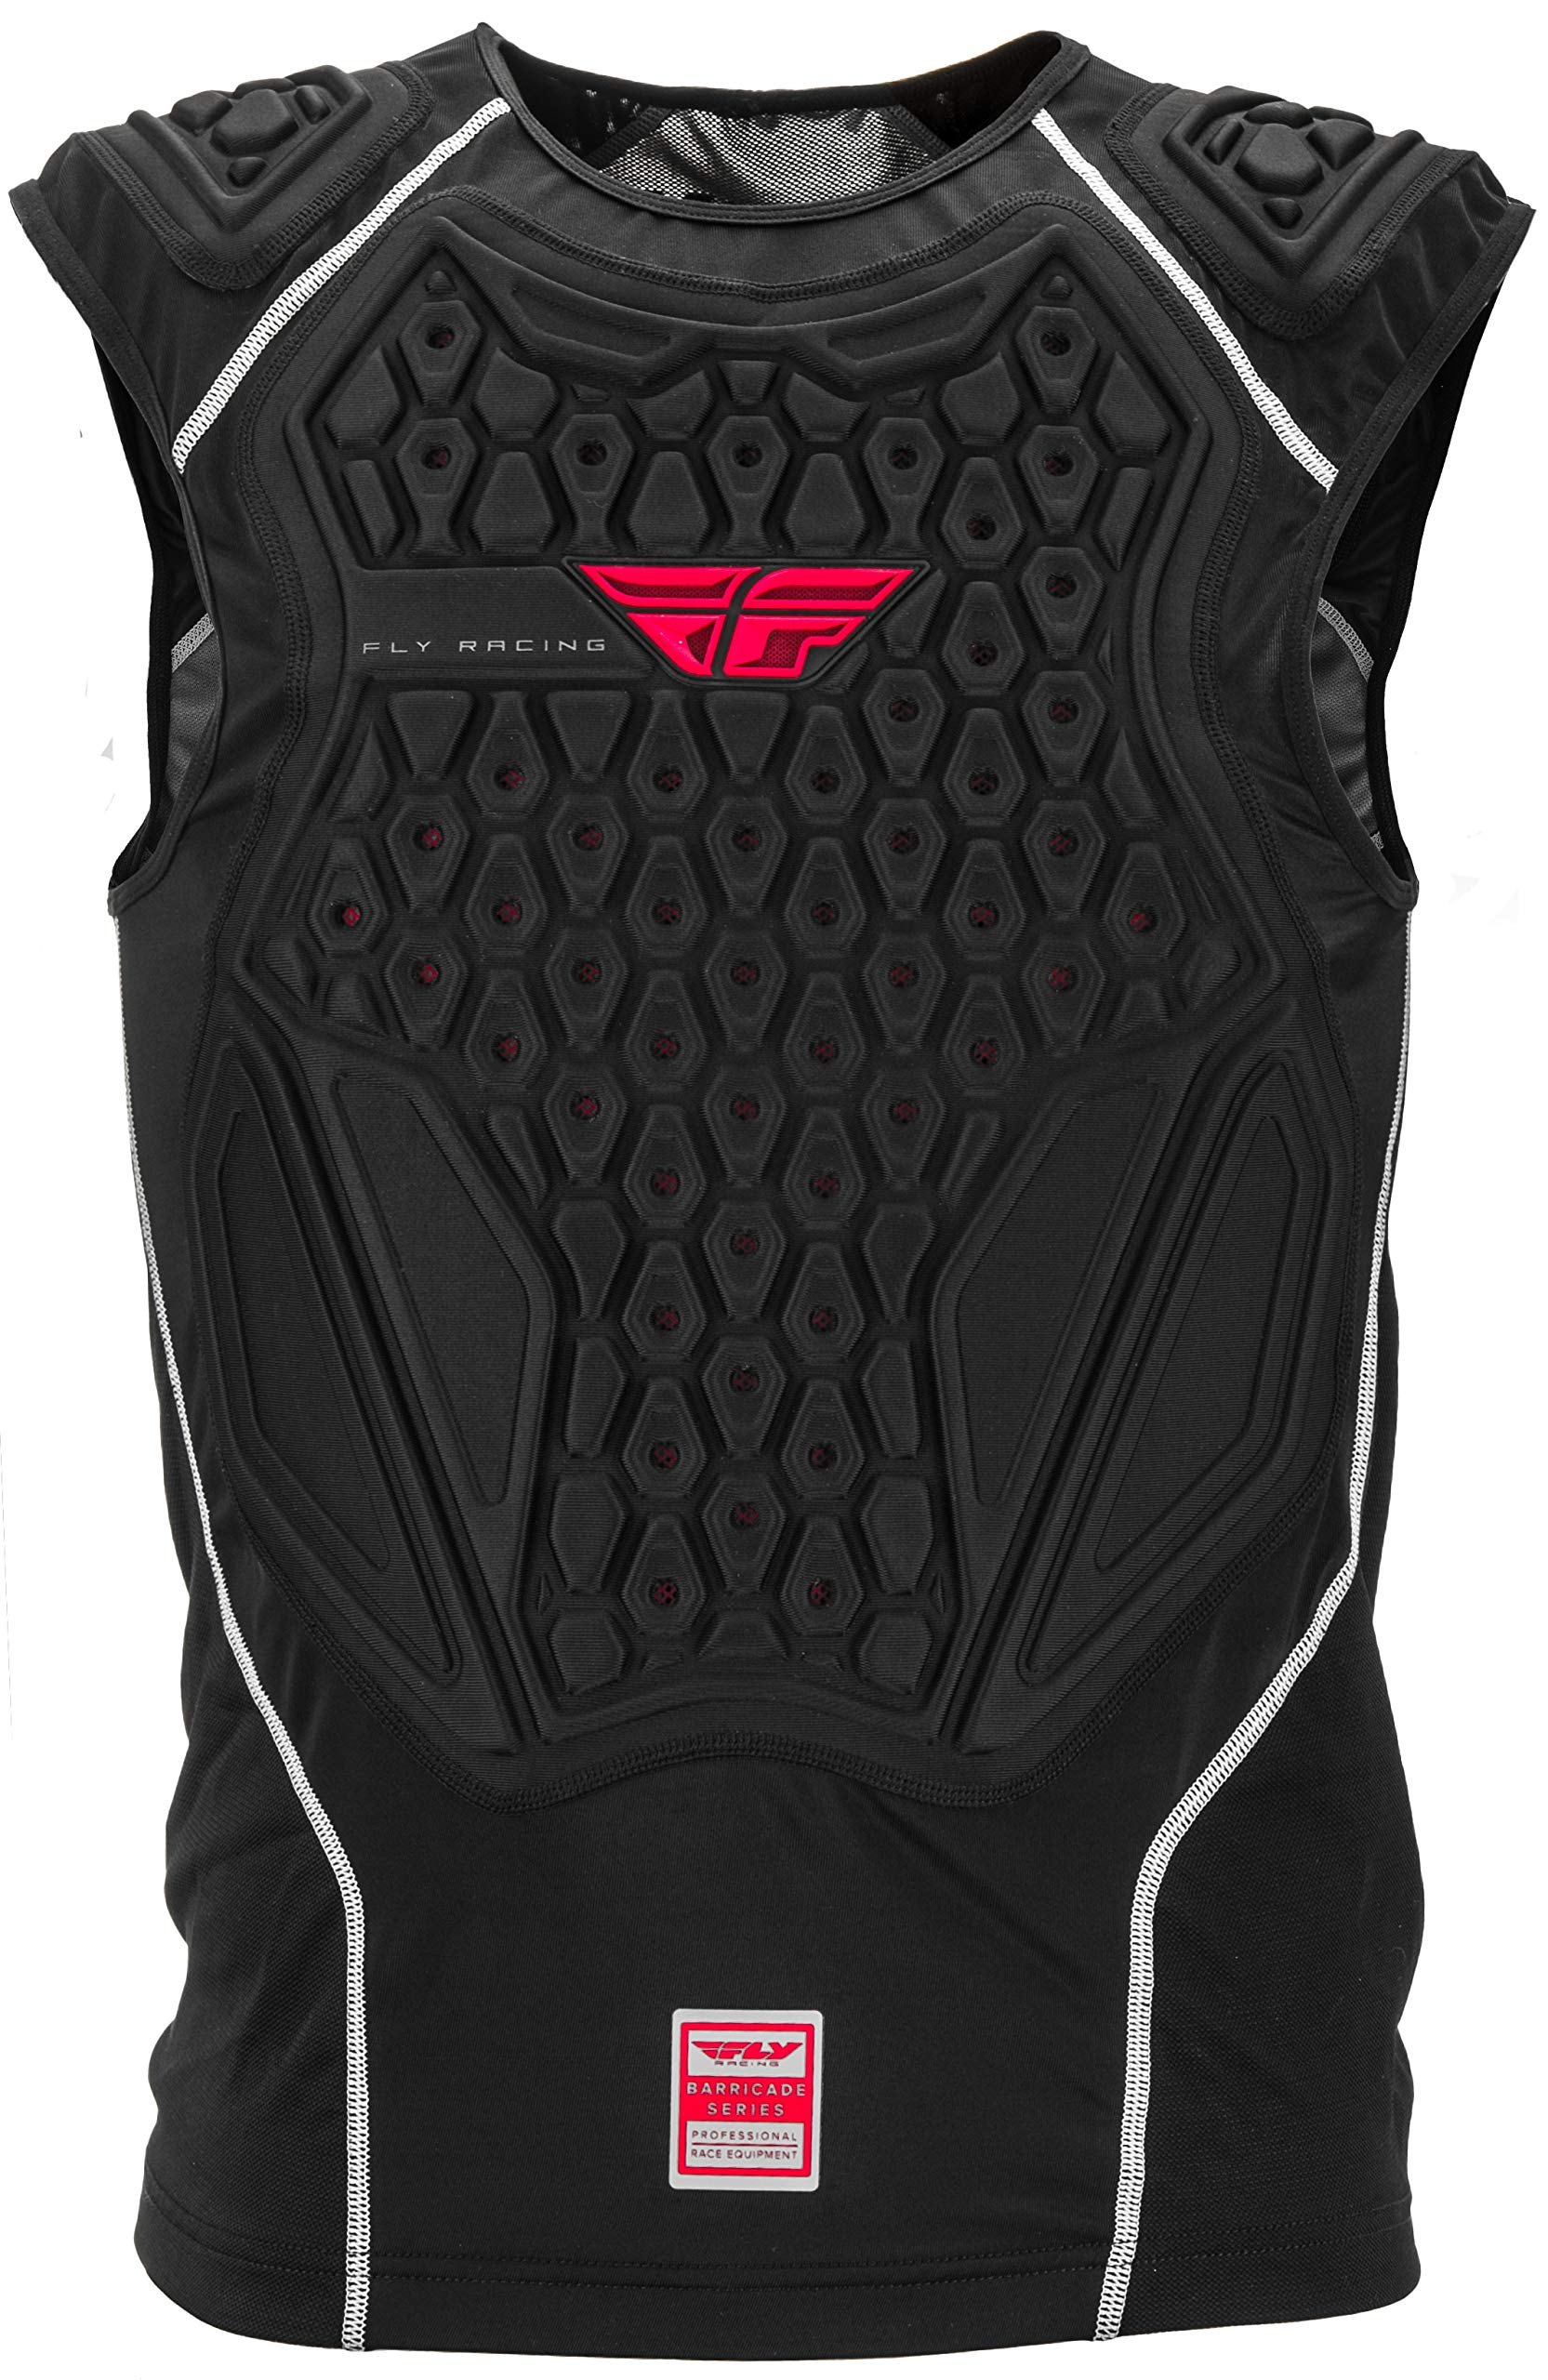 Fly Racing Barricade Pullover Protective Vest - Adult (SM/MD)